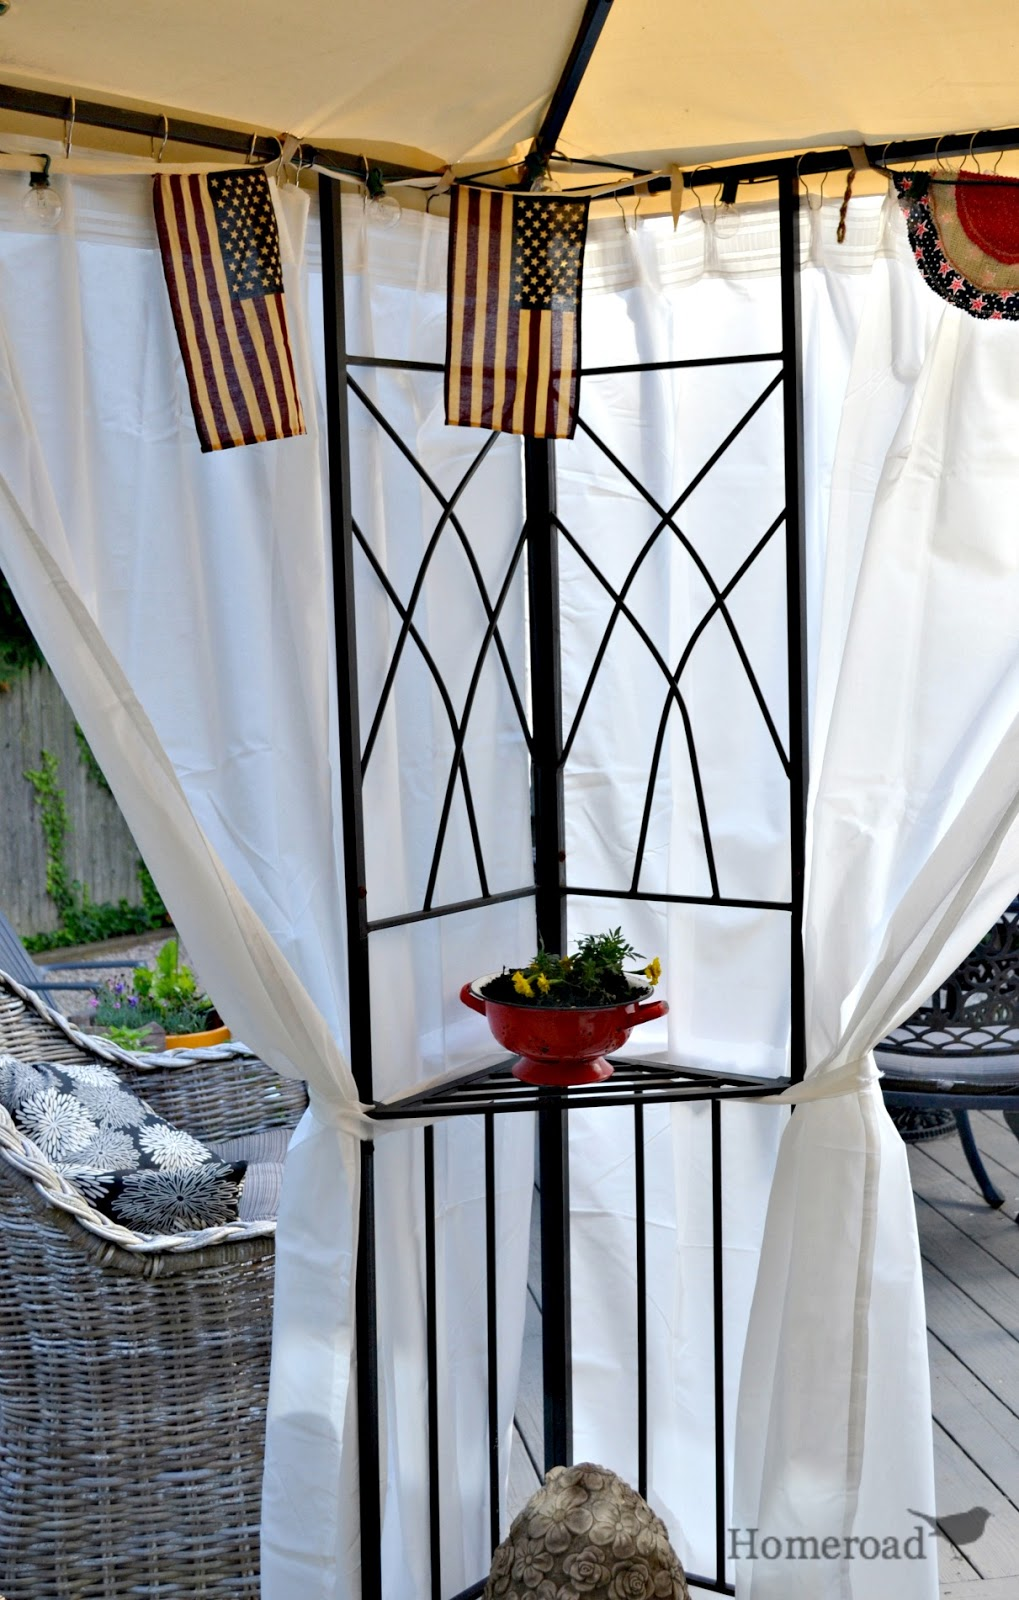 Diy Outdoor Canopy Curtains Homeroad Interiors Inside Ideas Interiors design about Everything [magnanprojects.com]